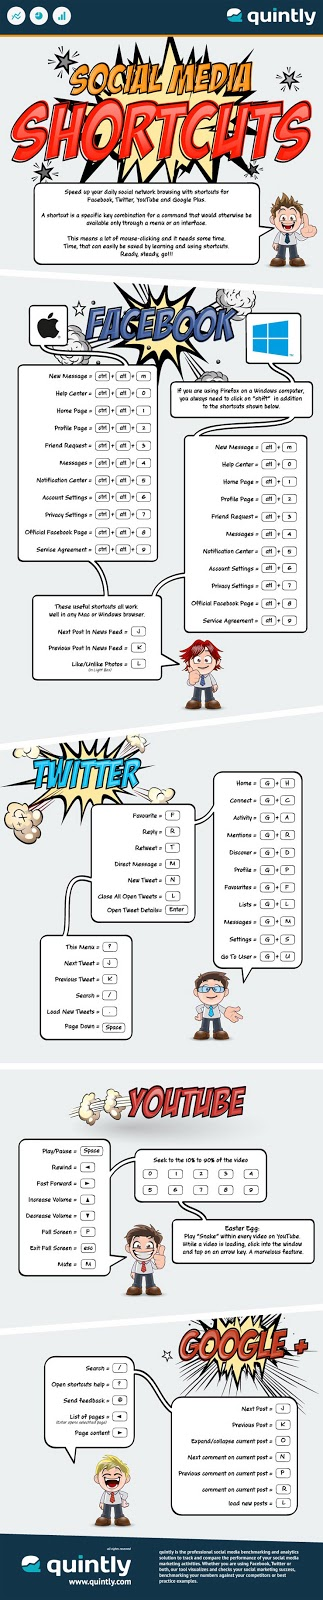 Save time with Social Media Shortcuts